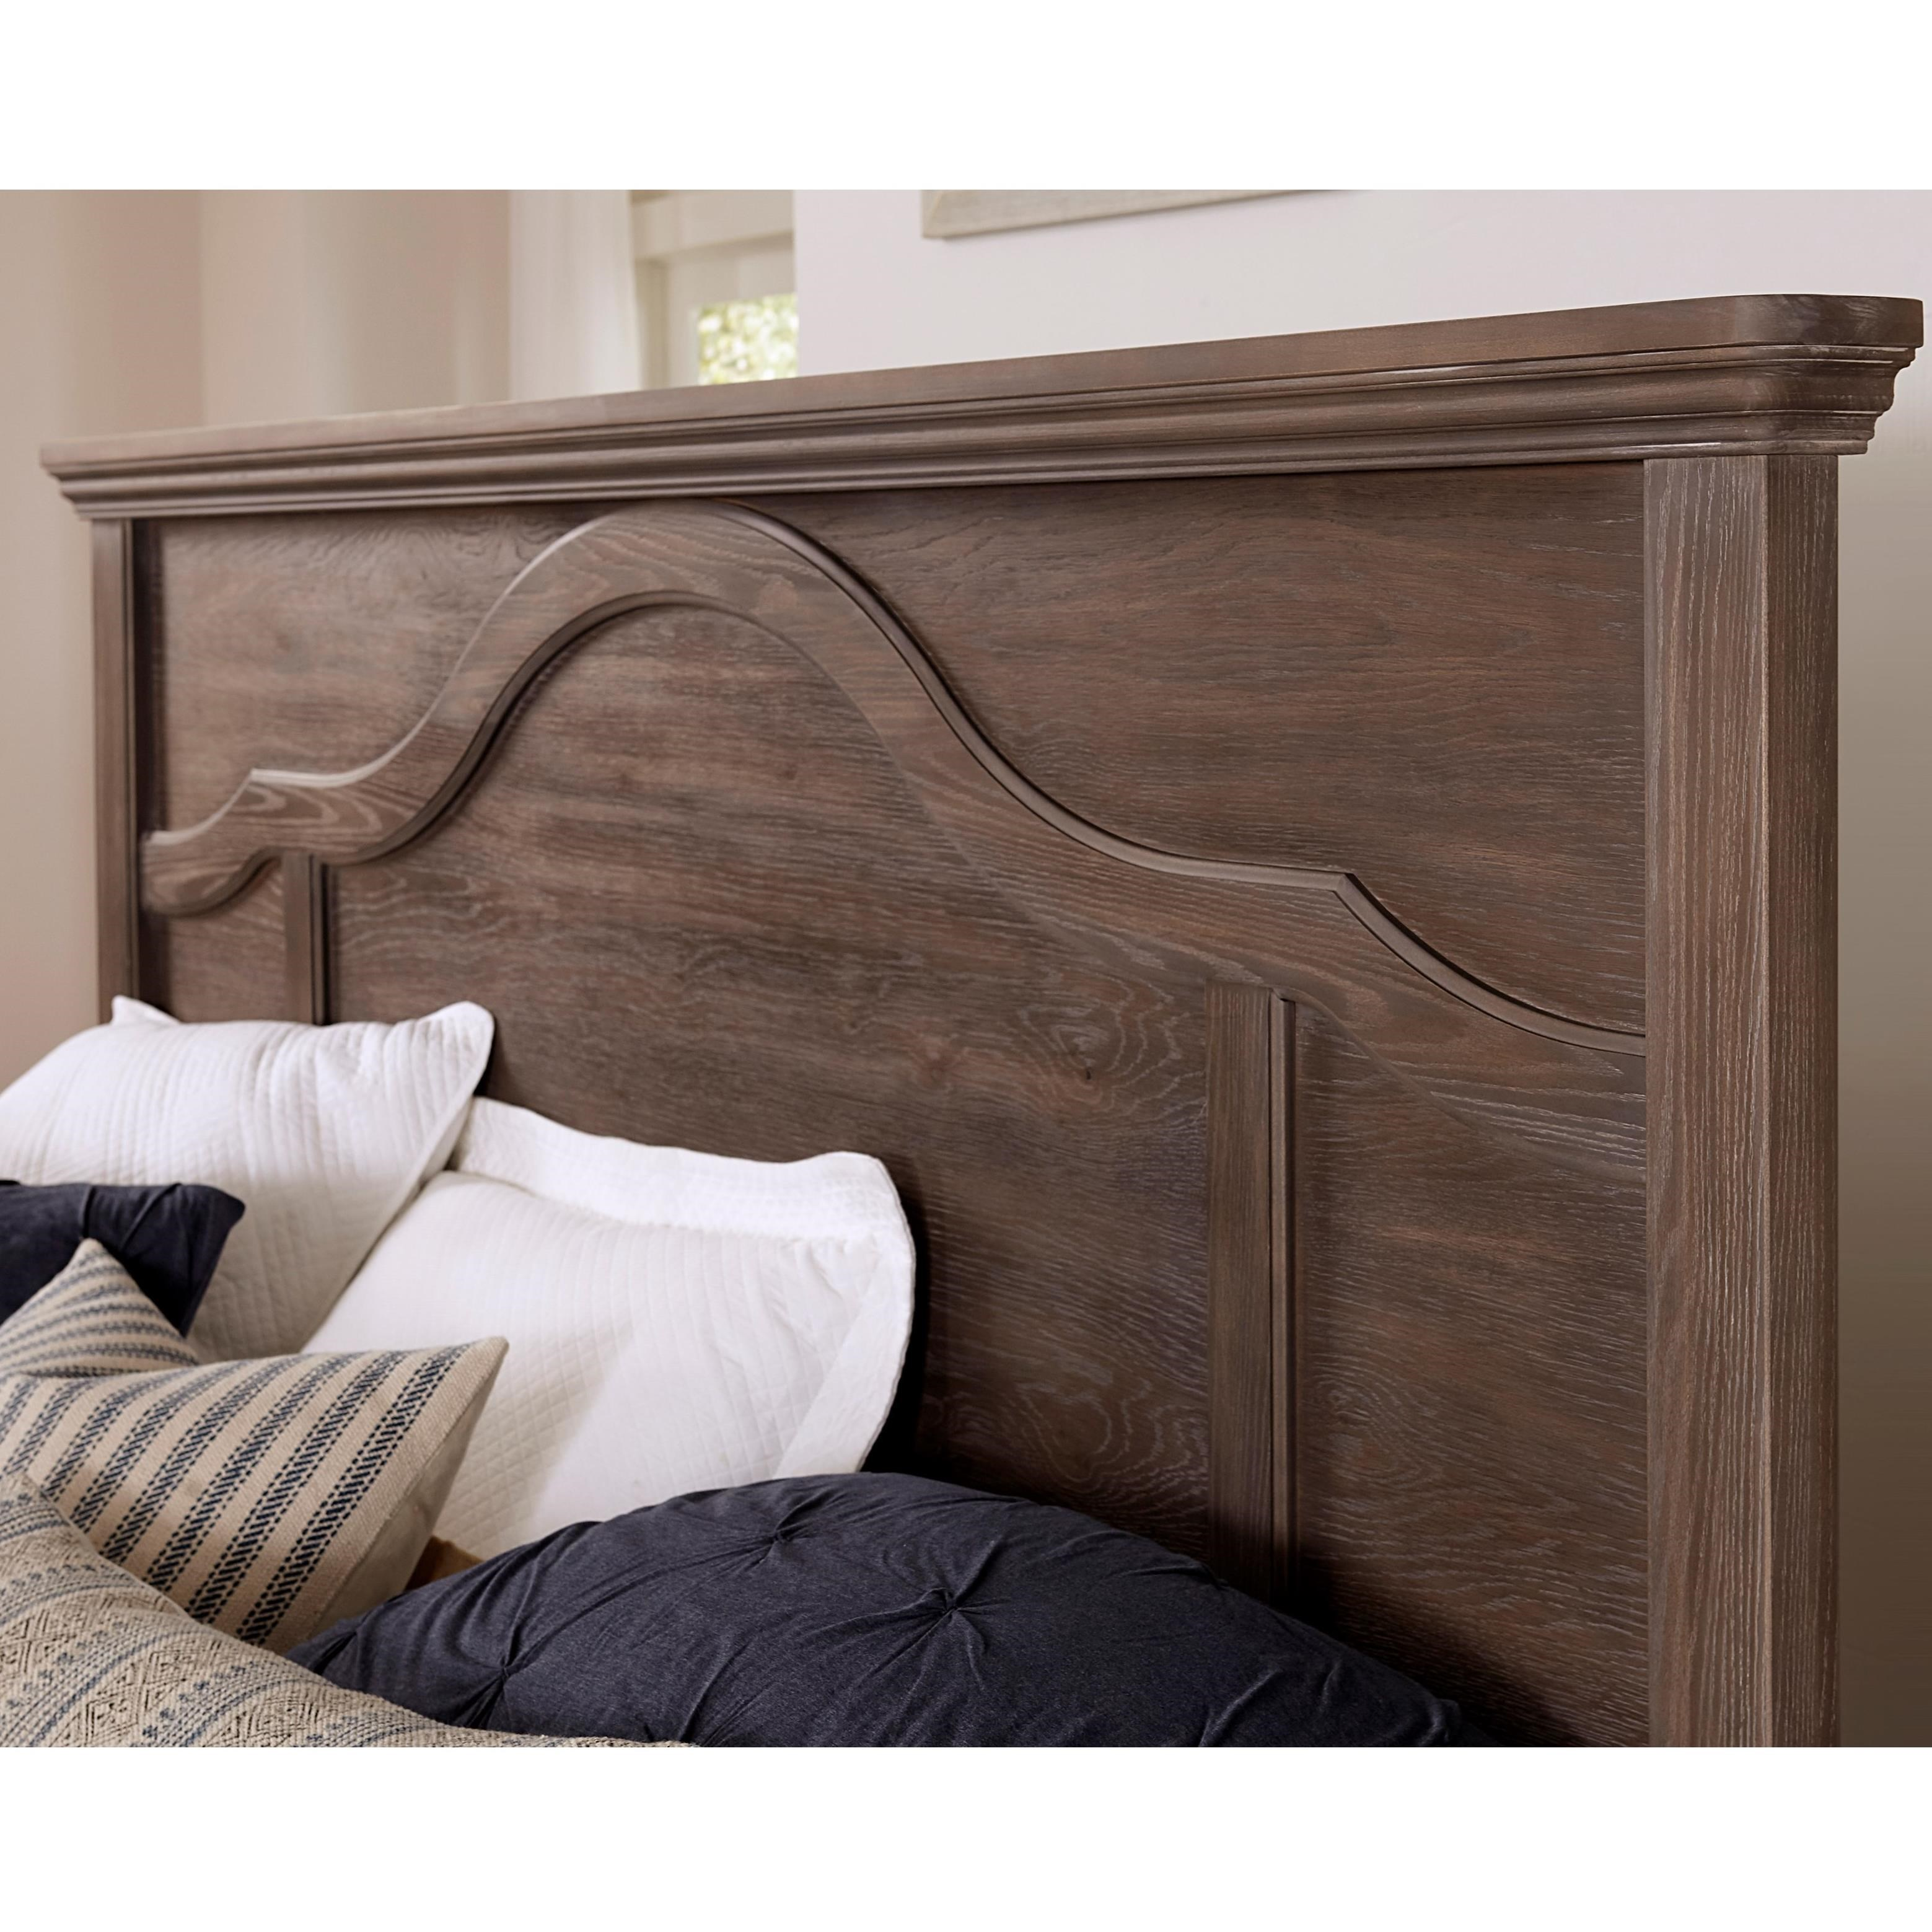 Bungalow Queen Mantel Headboard by Laurel Mercantile Co. at Johnny Janosik